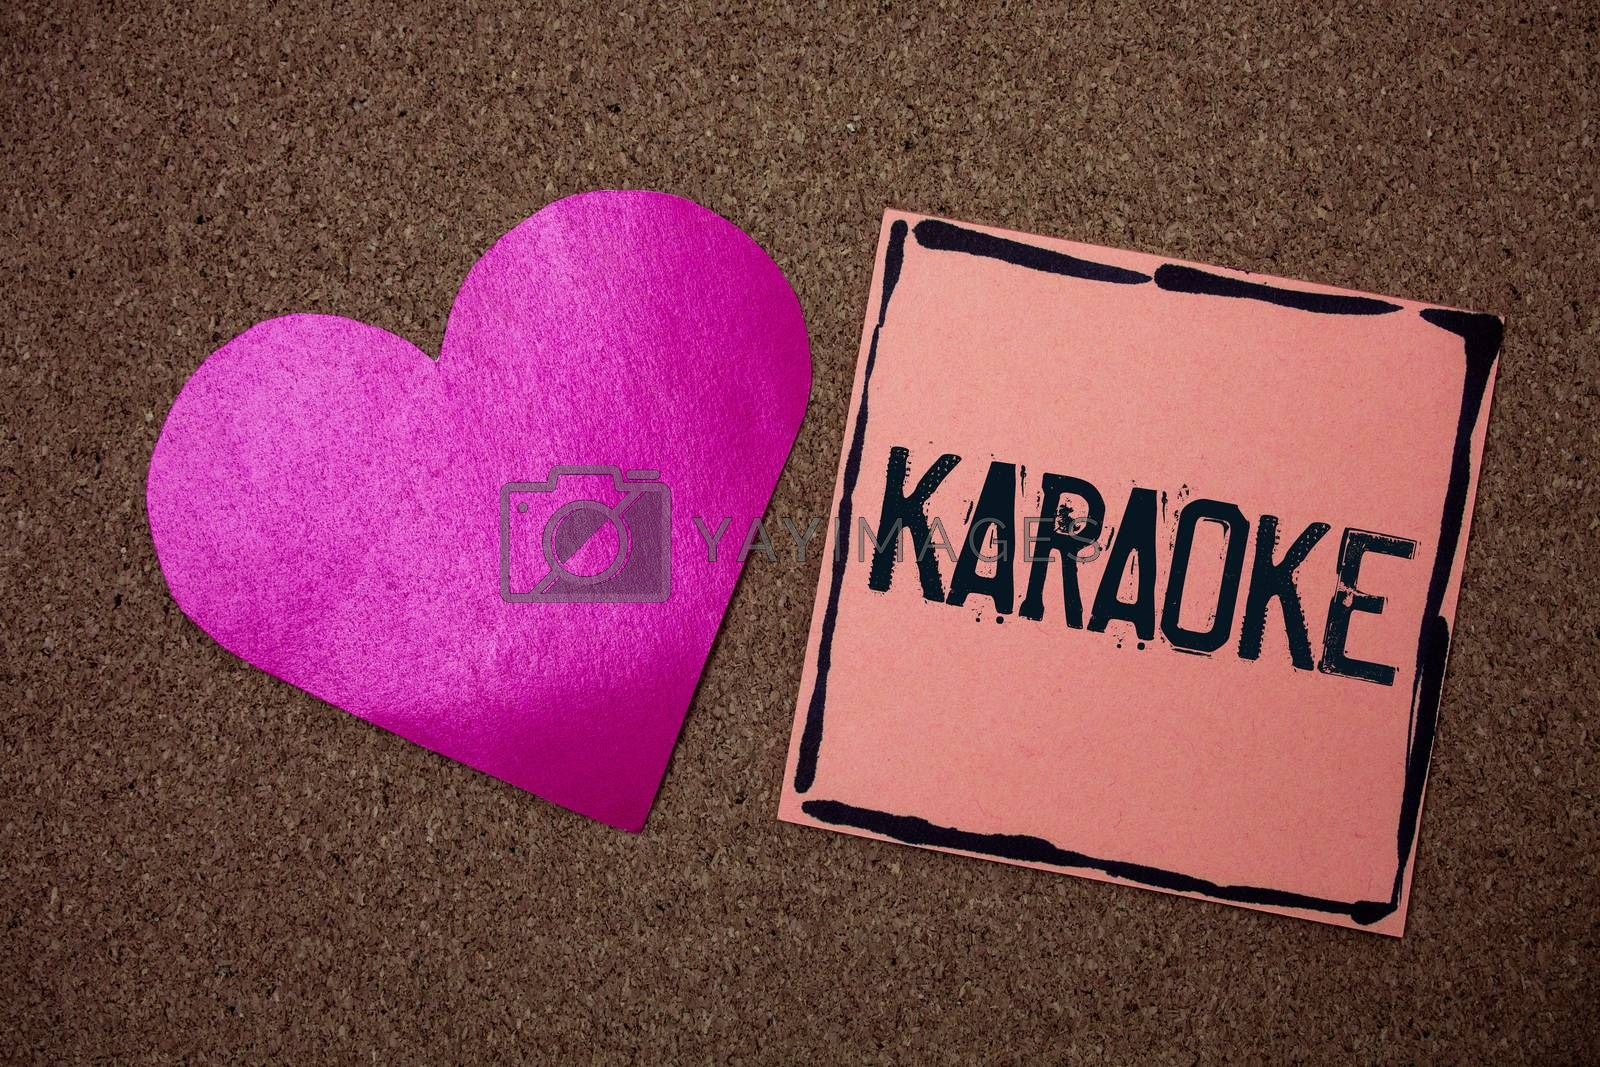 Word writing text Karaoke. Business concept for Entertainment singing along instrumental music played by a machine Love heart sticky small papers remember rough dark background line drawing